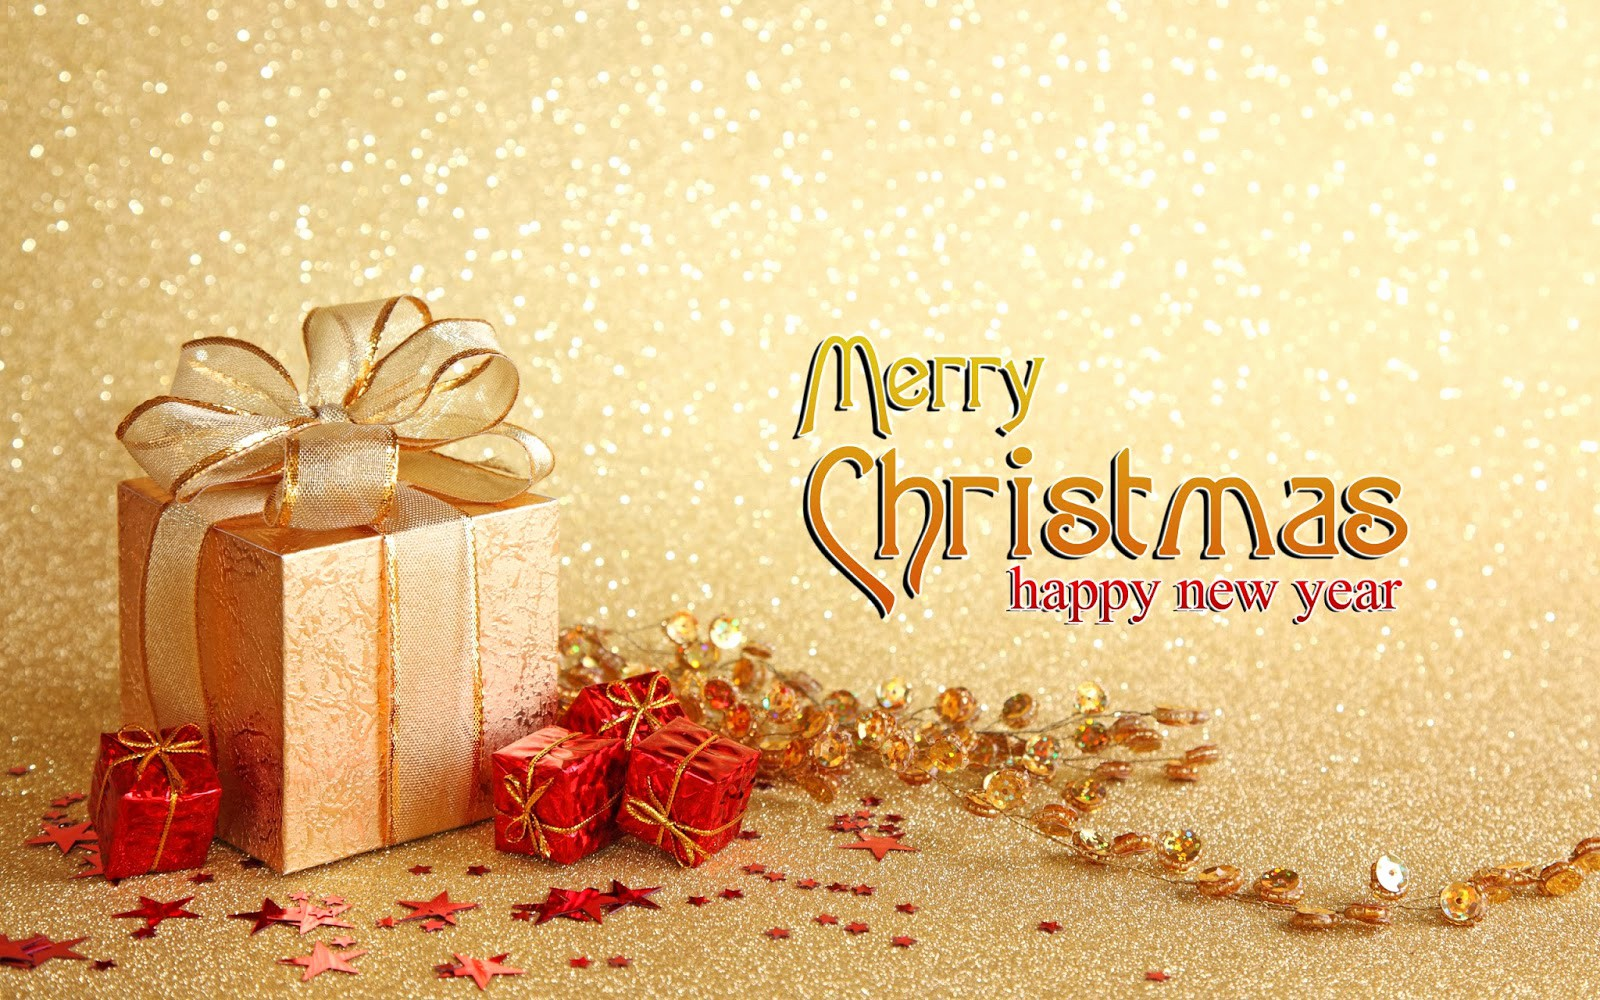 Merry Christmas Notes for Cards Beautiful 100 Merry Christmas Wishes Greetings & Messages